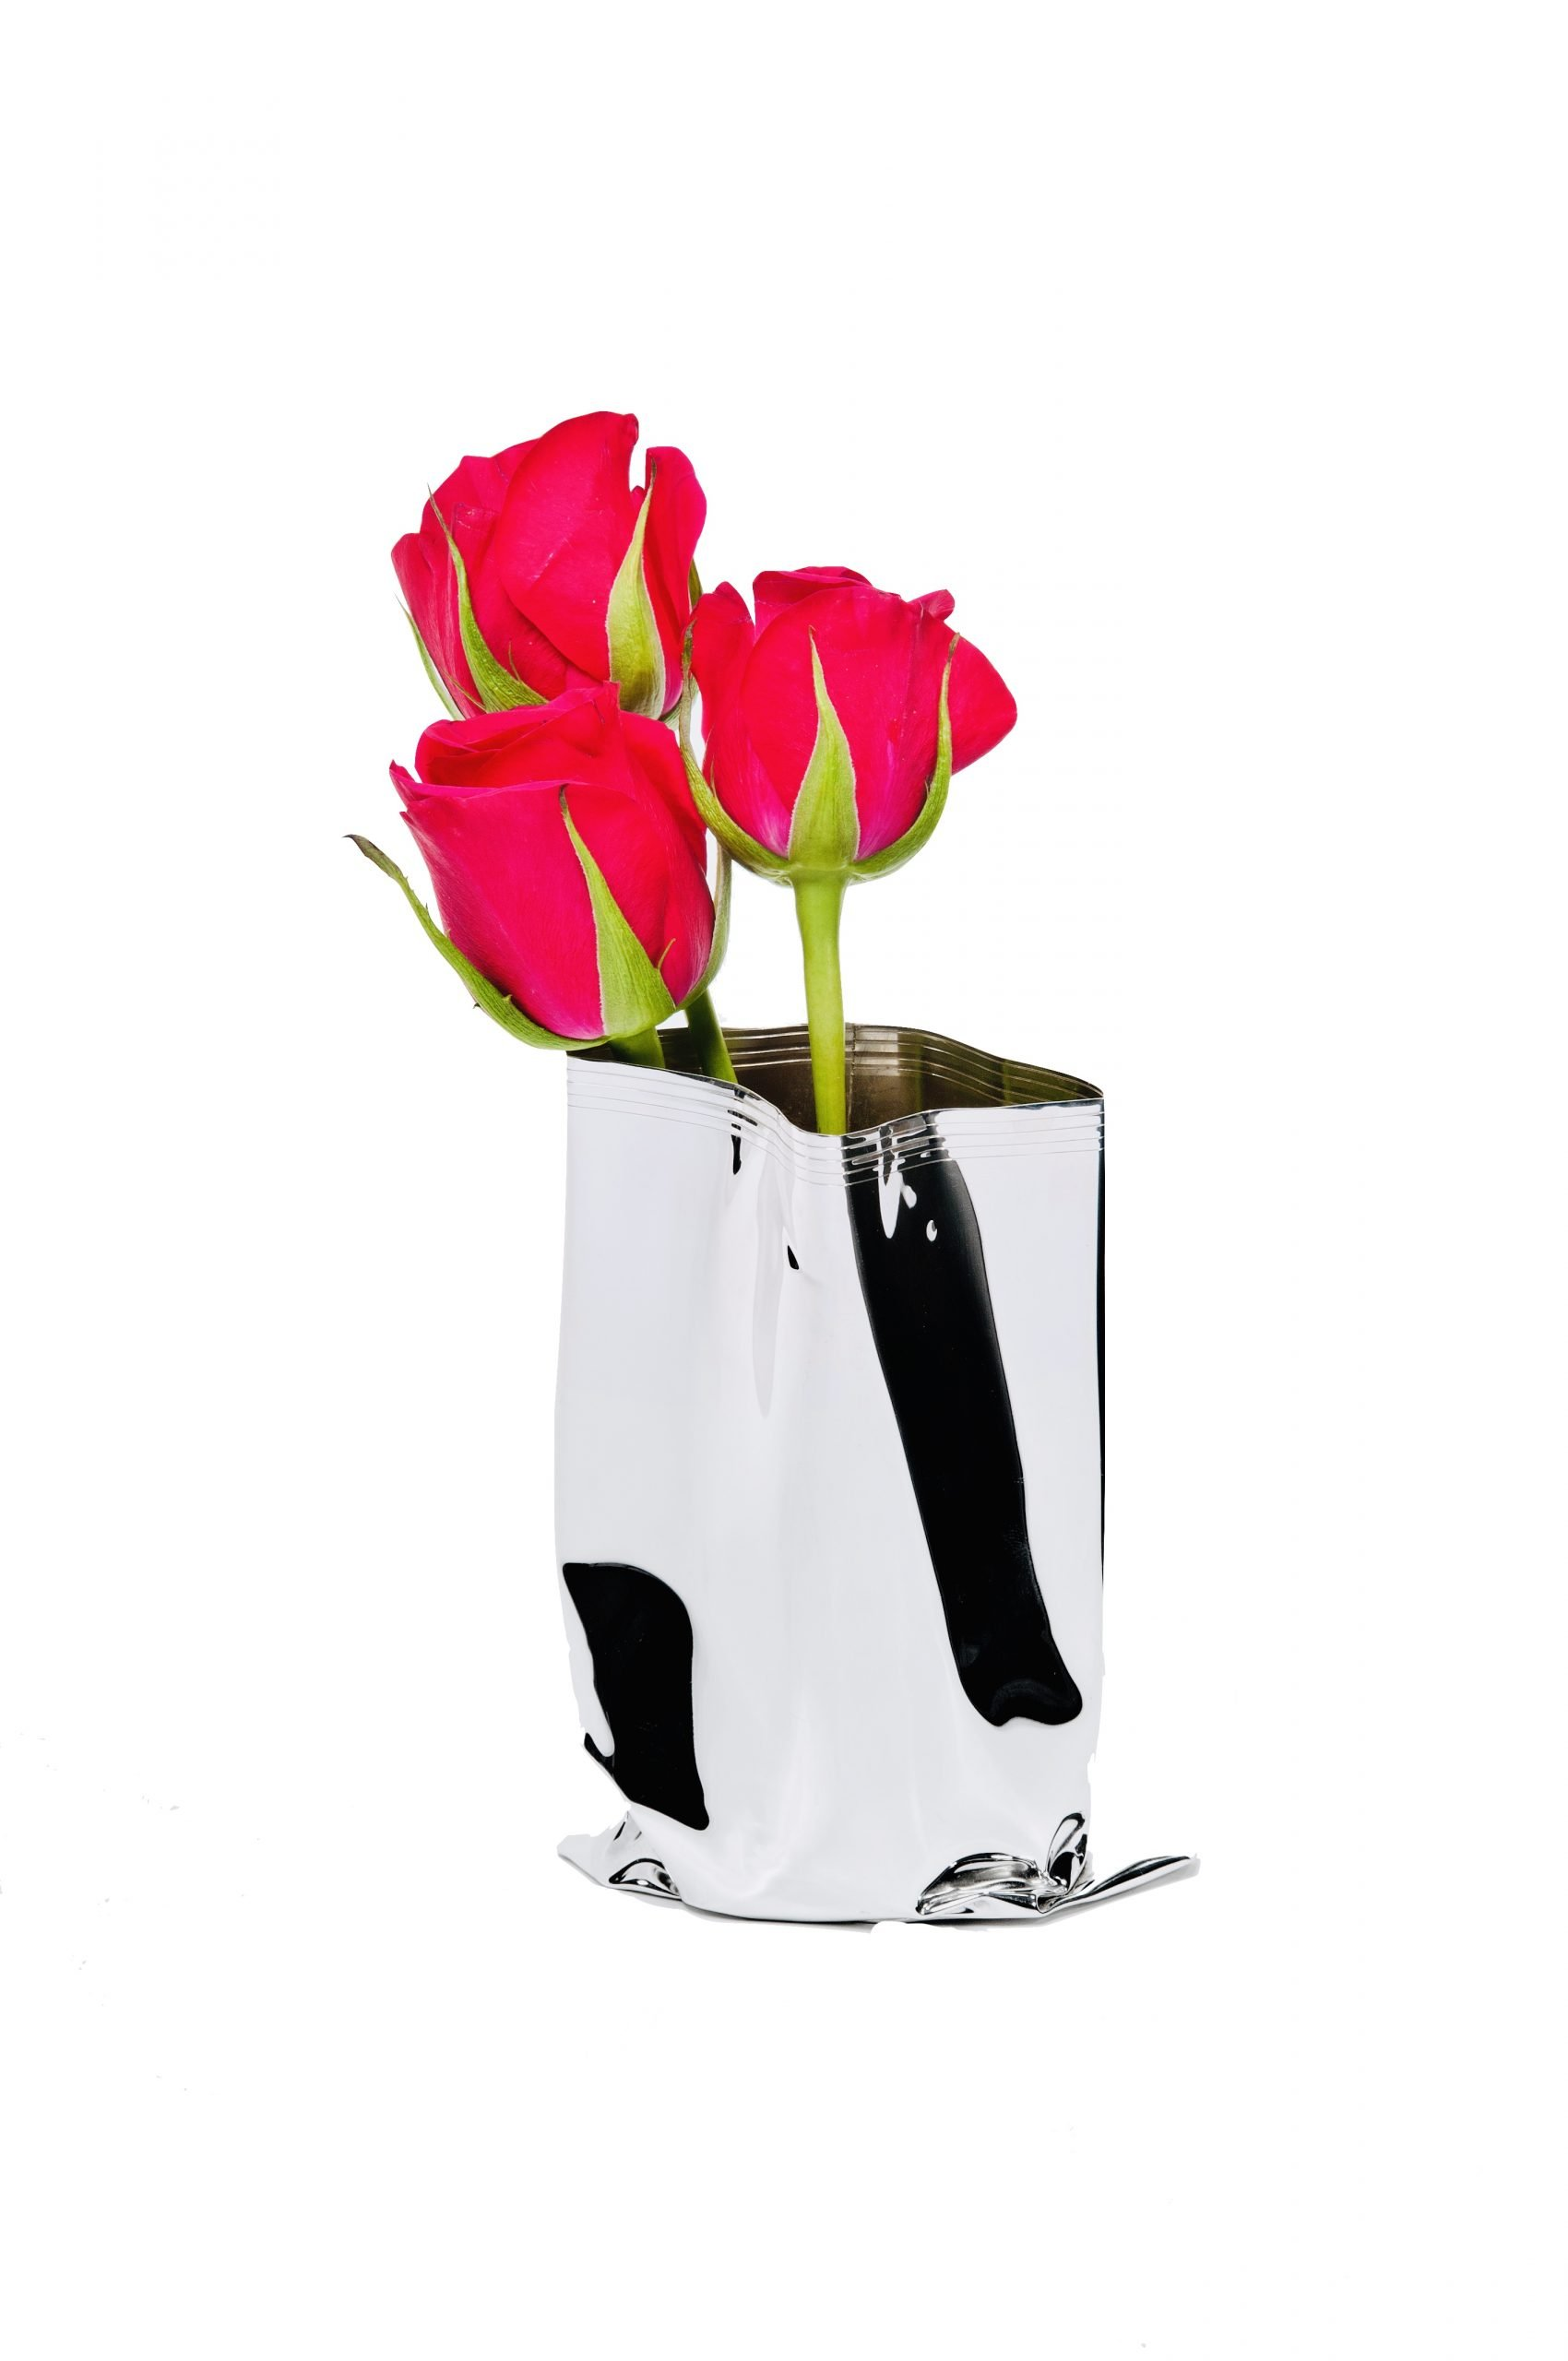 Medium Silver 'Packet Vase' by Rebecca Joselyn Silversmith and Jeweller Made in Sheffield South Yorkshire